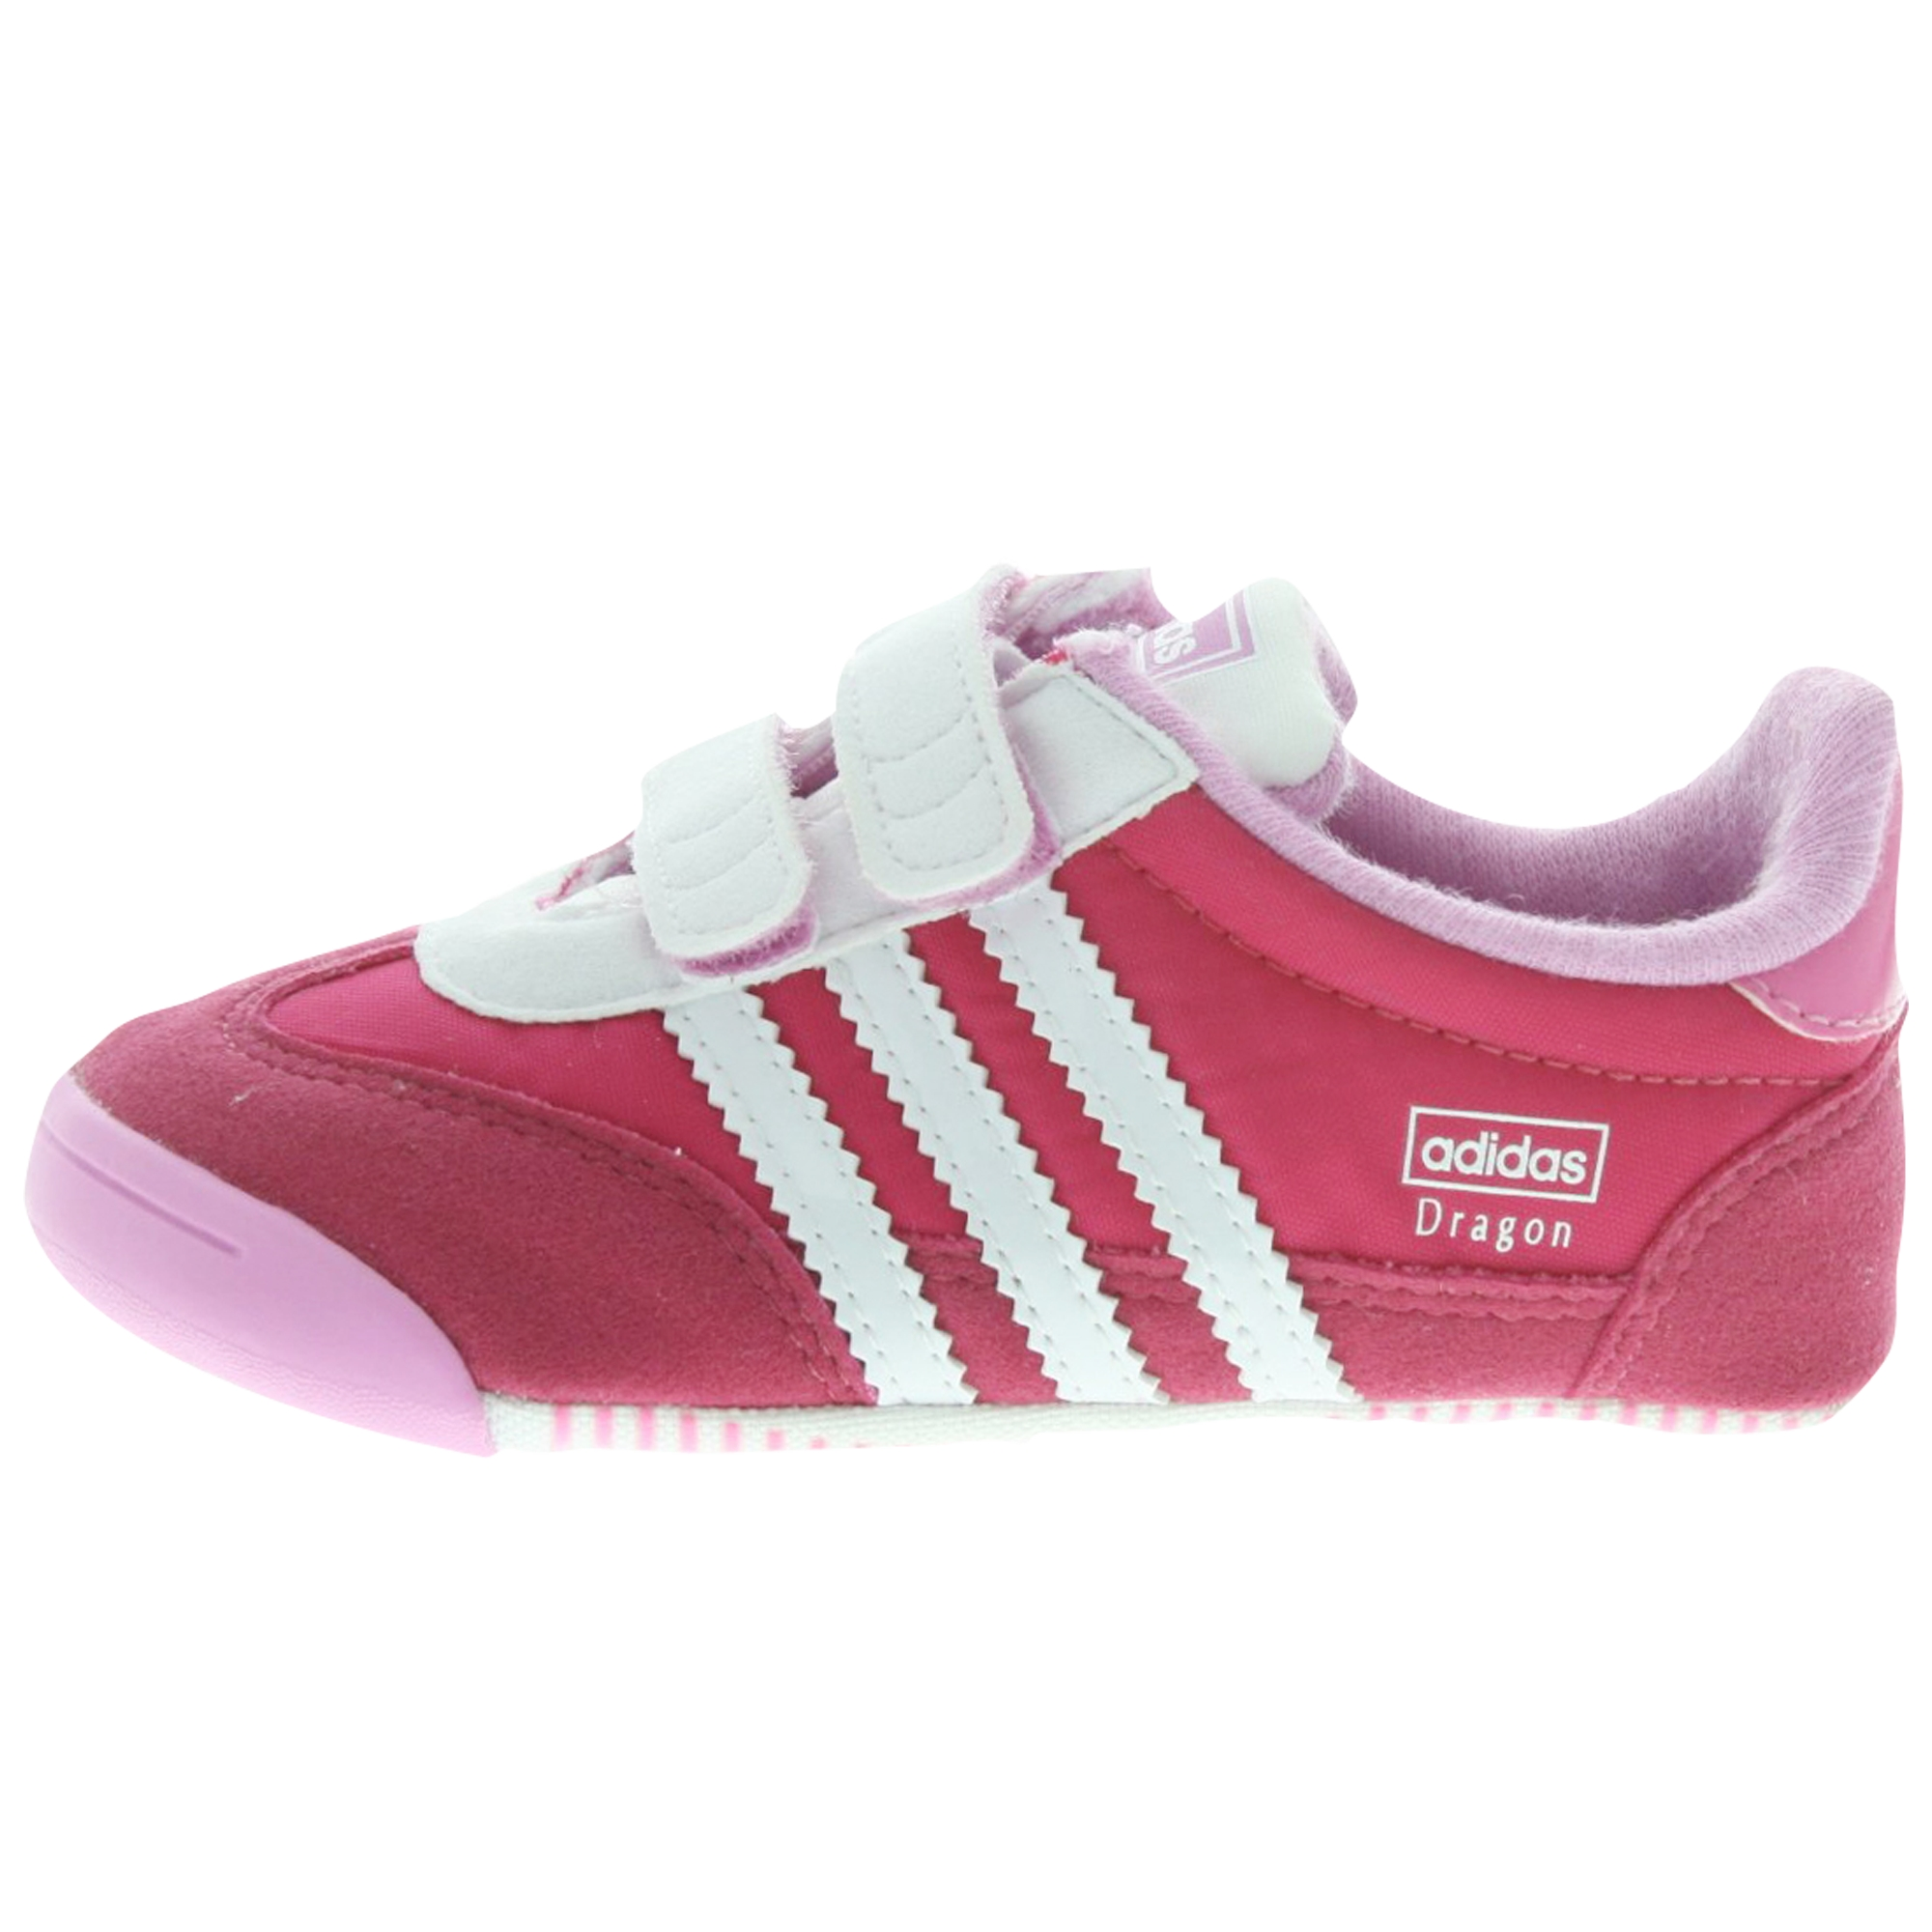 adidas learn 2 walk dragon crib,Adidas Shoe Learn 2 Walk